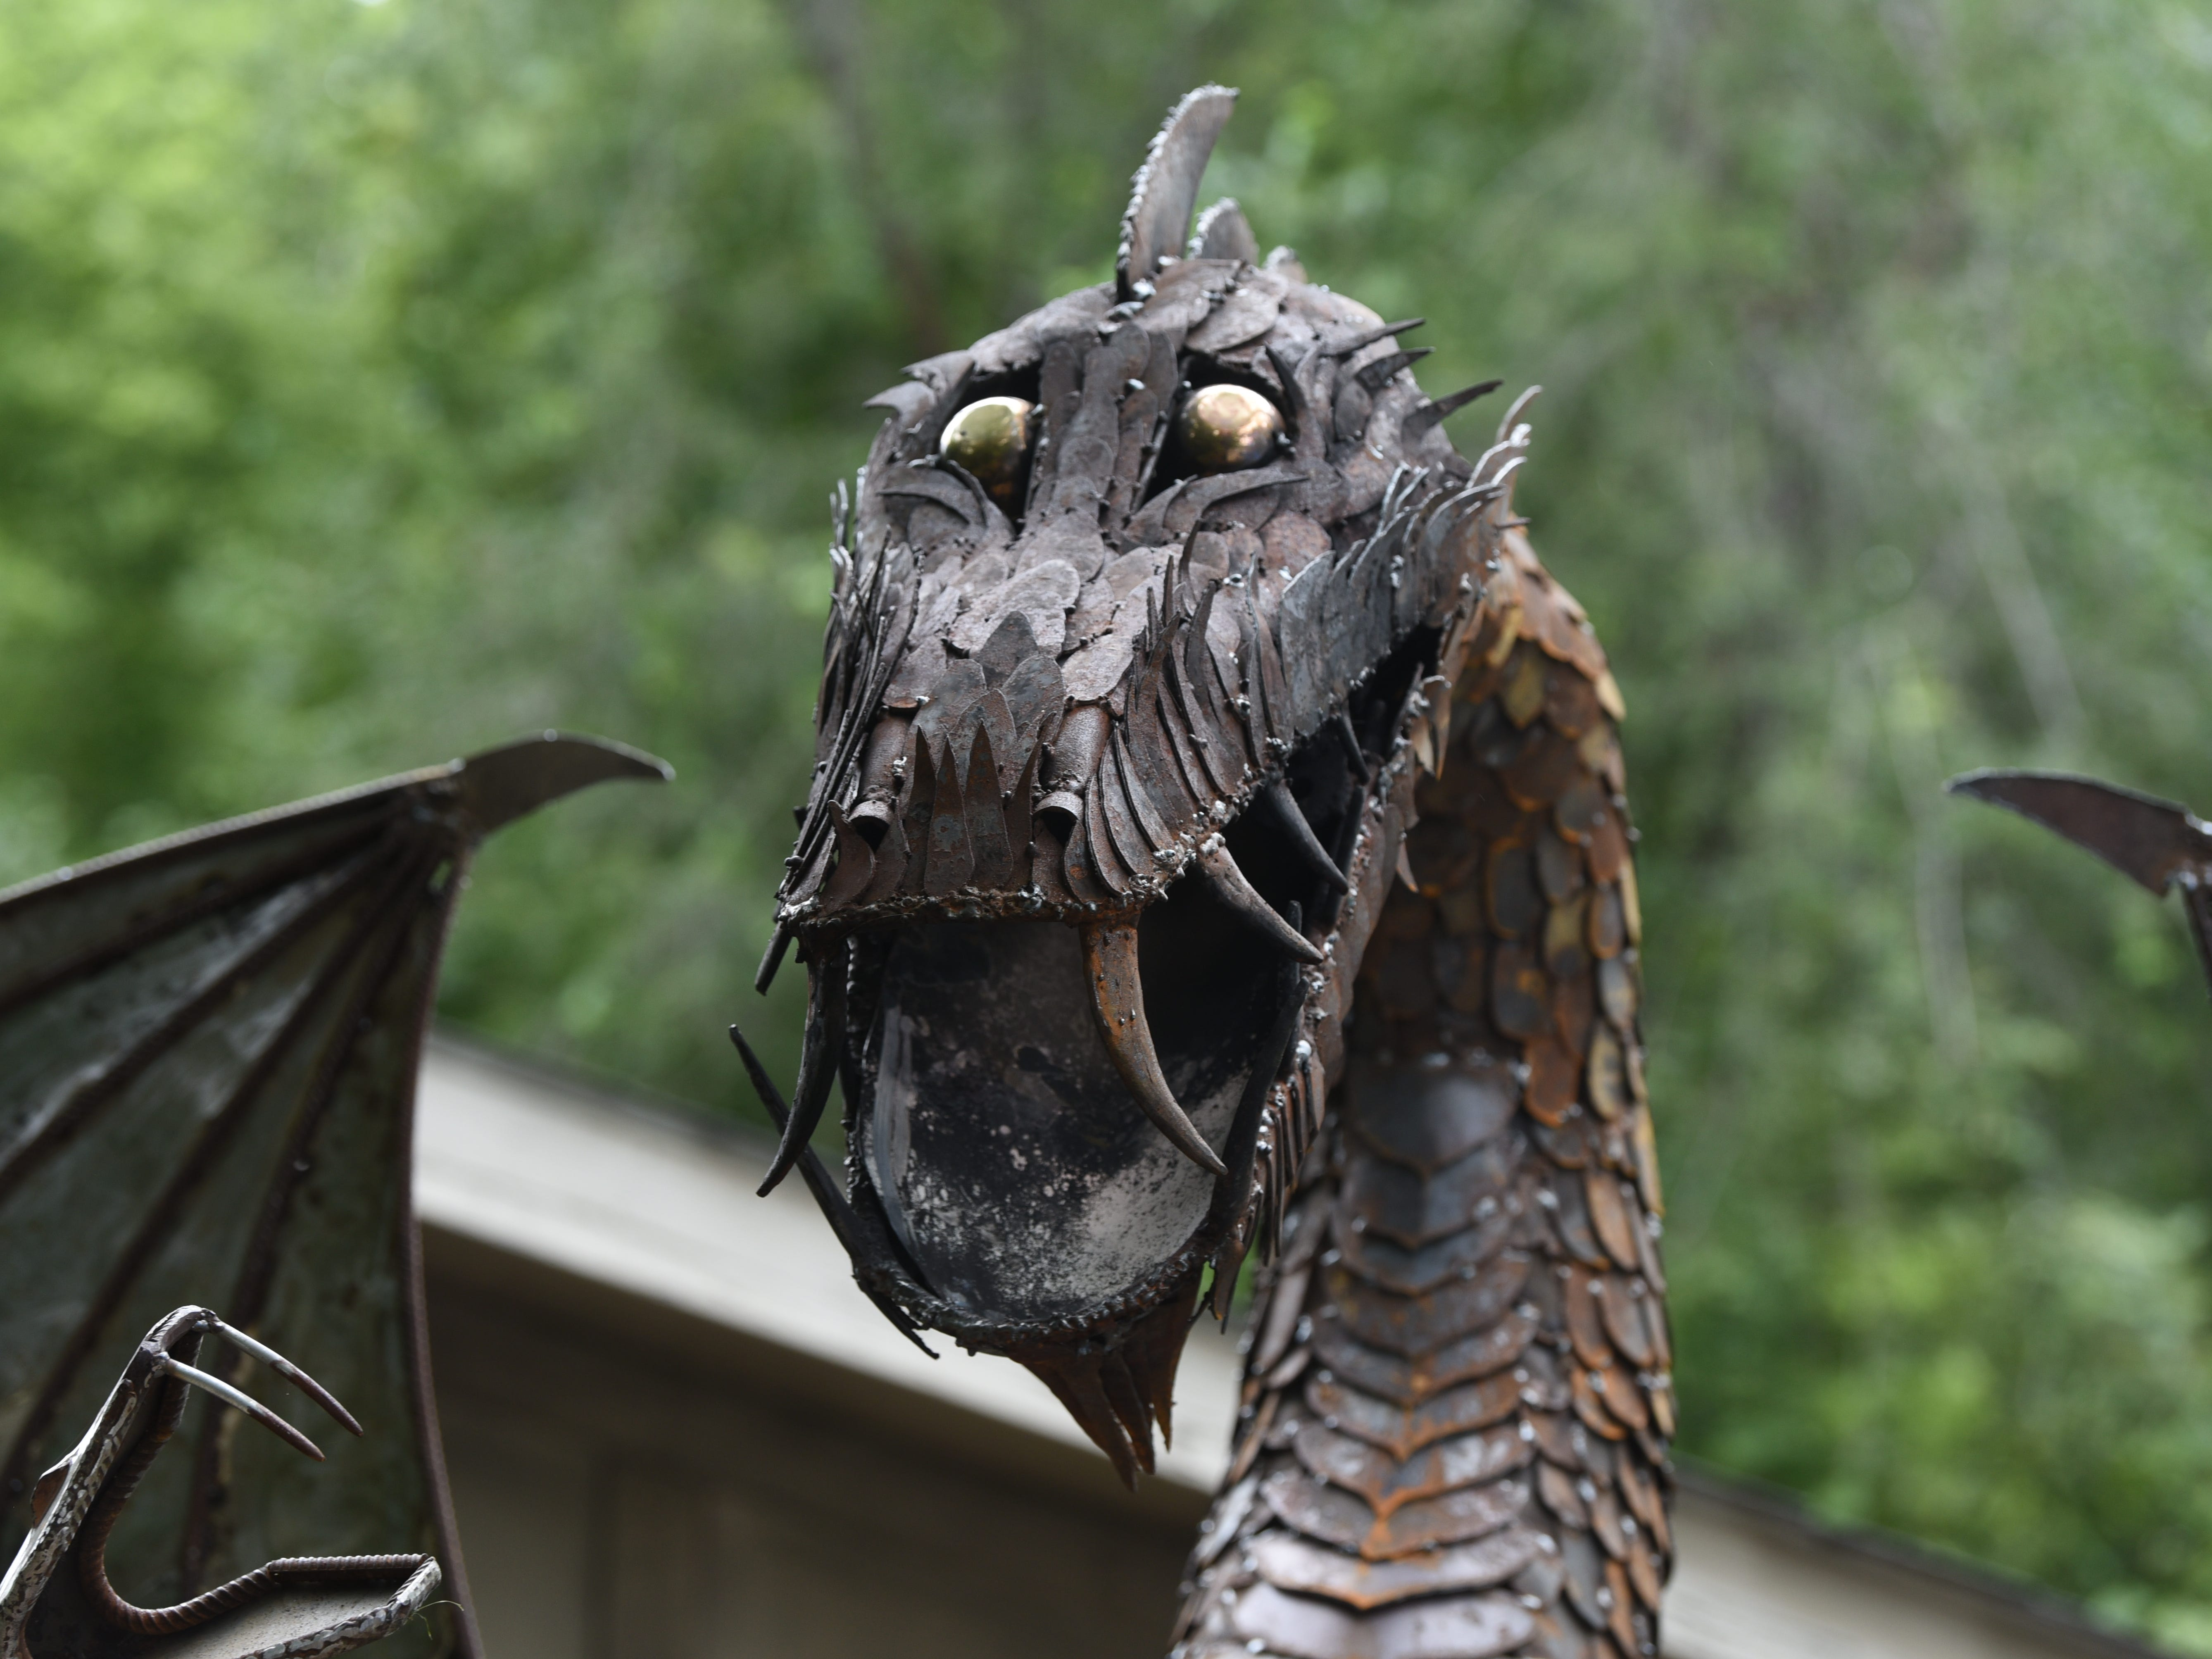 This 12-foot fire breathing dragon has mammoth teeth and shiny eyes as Taylor artist Keith Coleman hopes his creation will win ArtPrize.